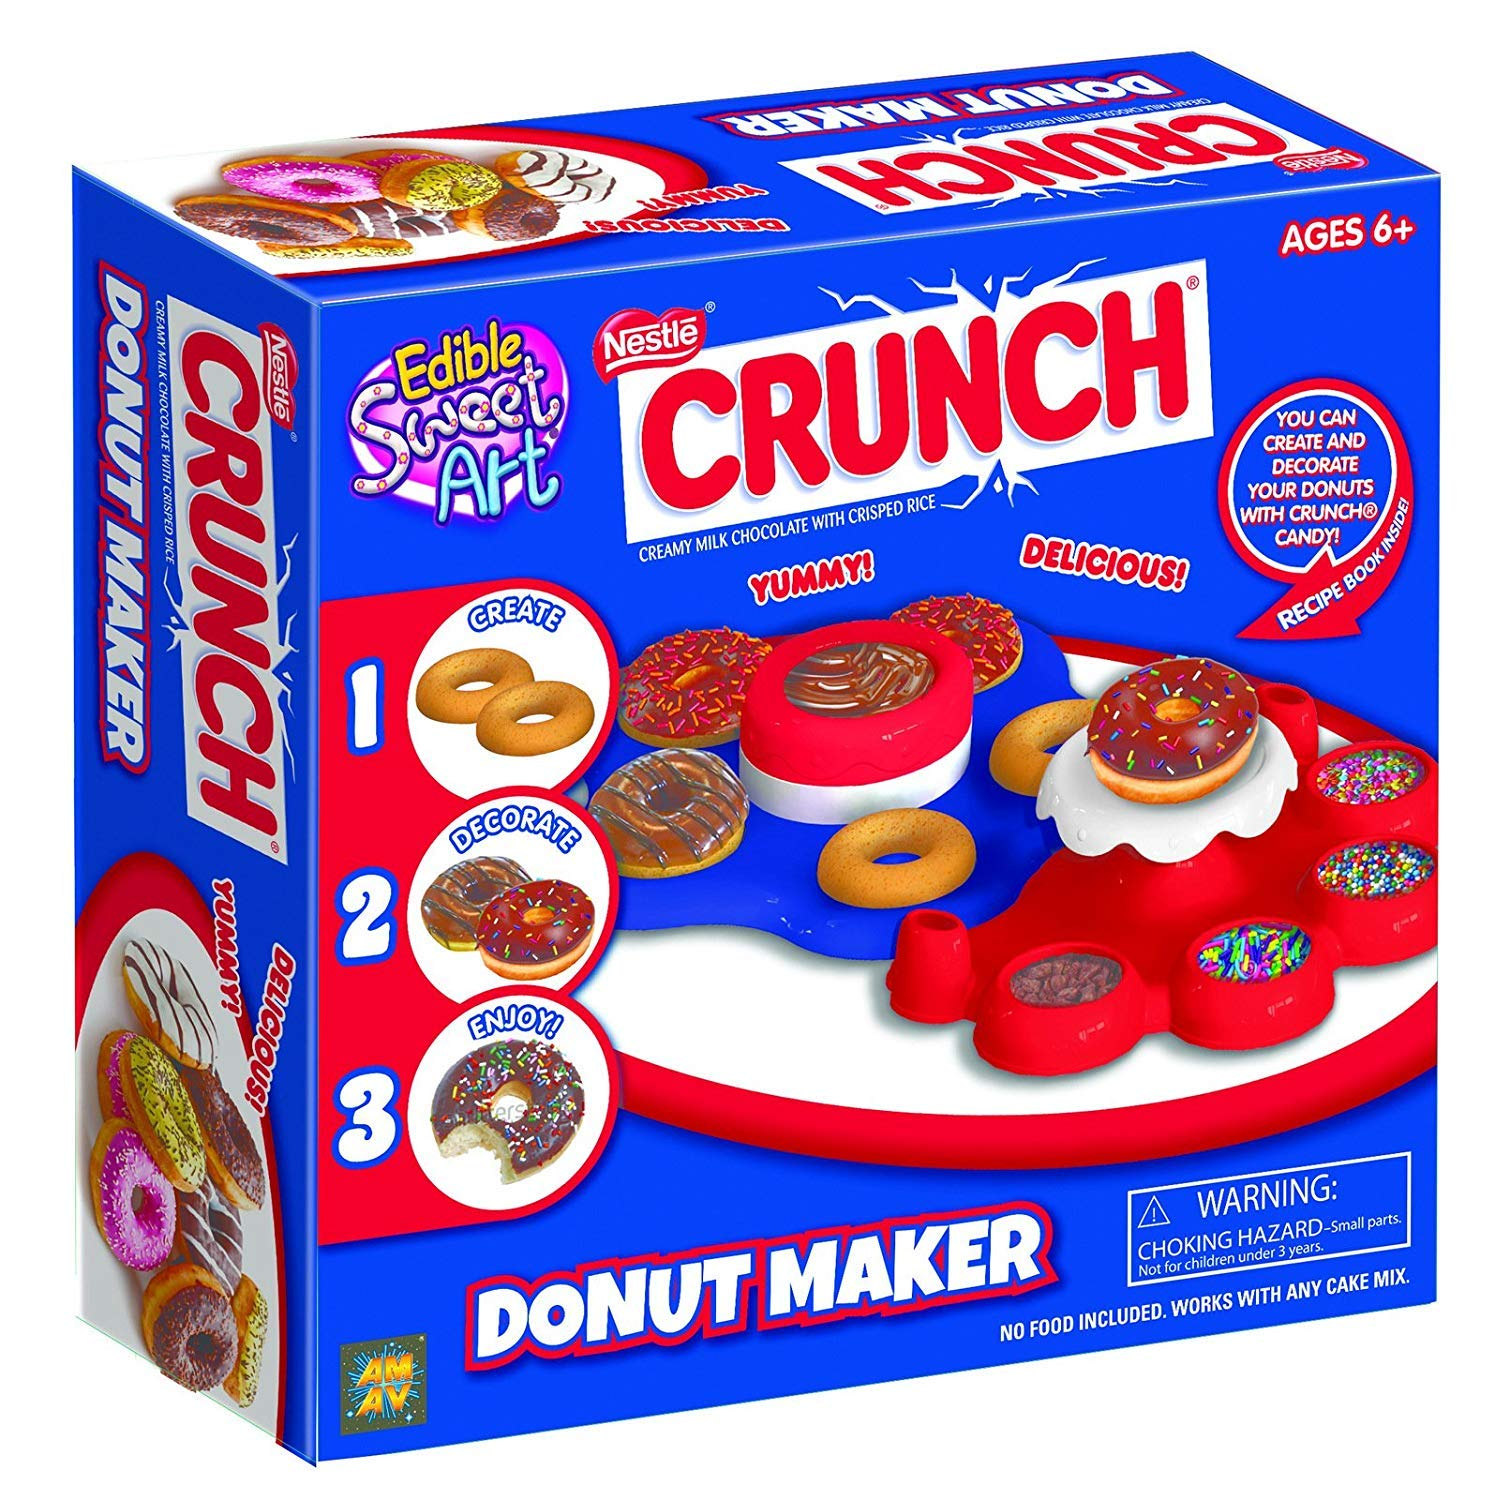 Crunch Donut Maker - Fun for Group Activity - Easy to Make & Fun To Decorate - Perfect Birthday Party Activity & Sleepovers - Great Present For Young Donuts Lovers - For Kids Aged 6+ by AMAV Toys